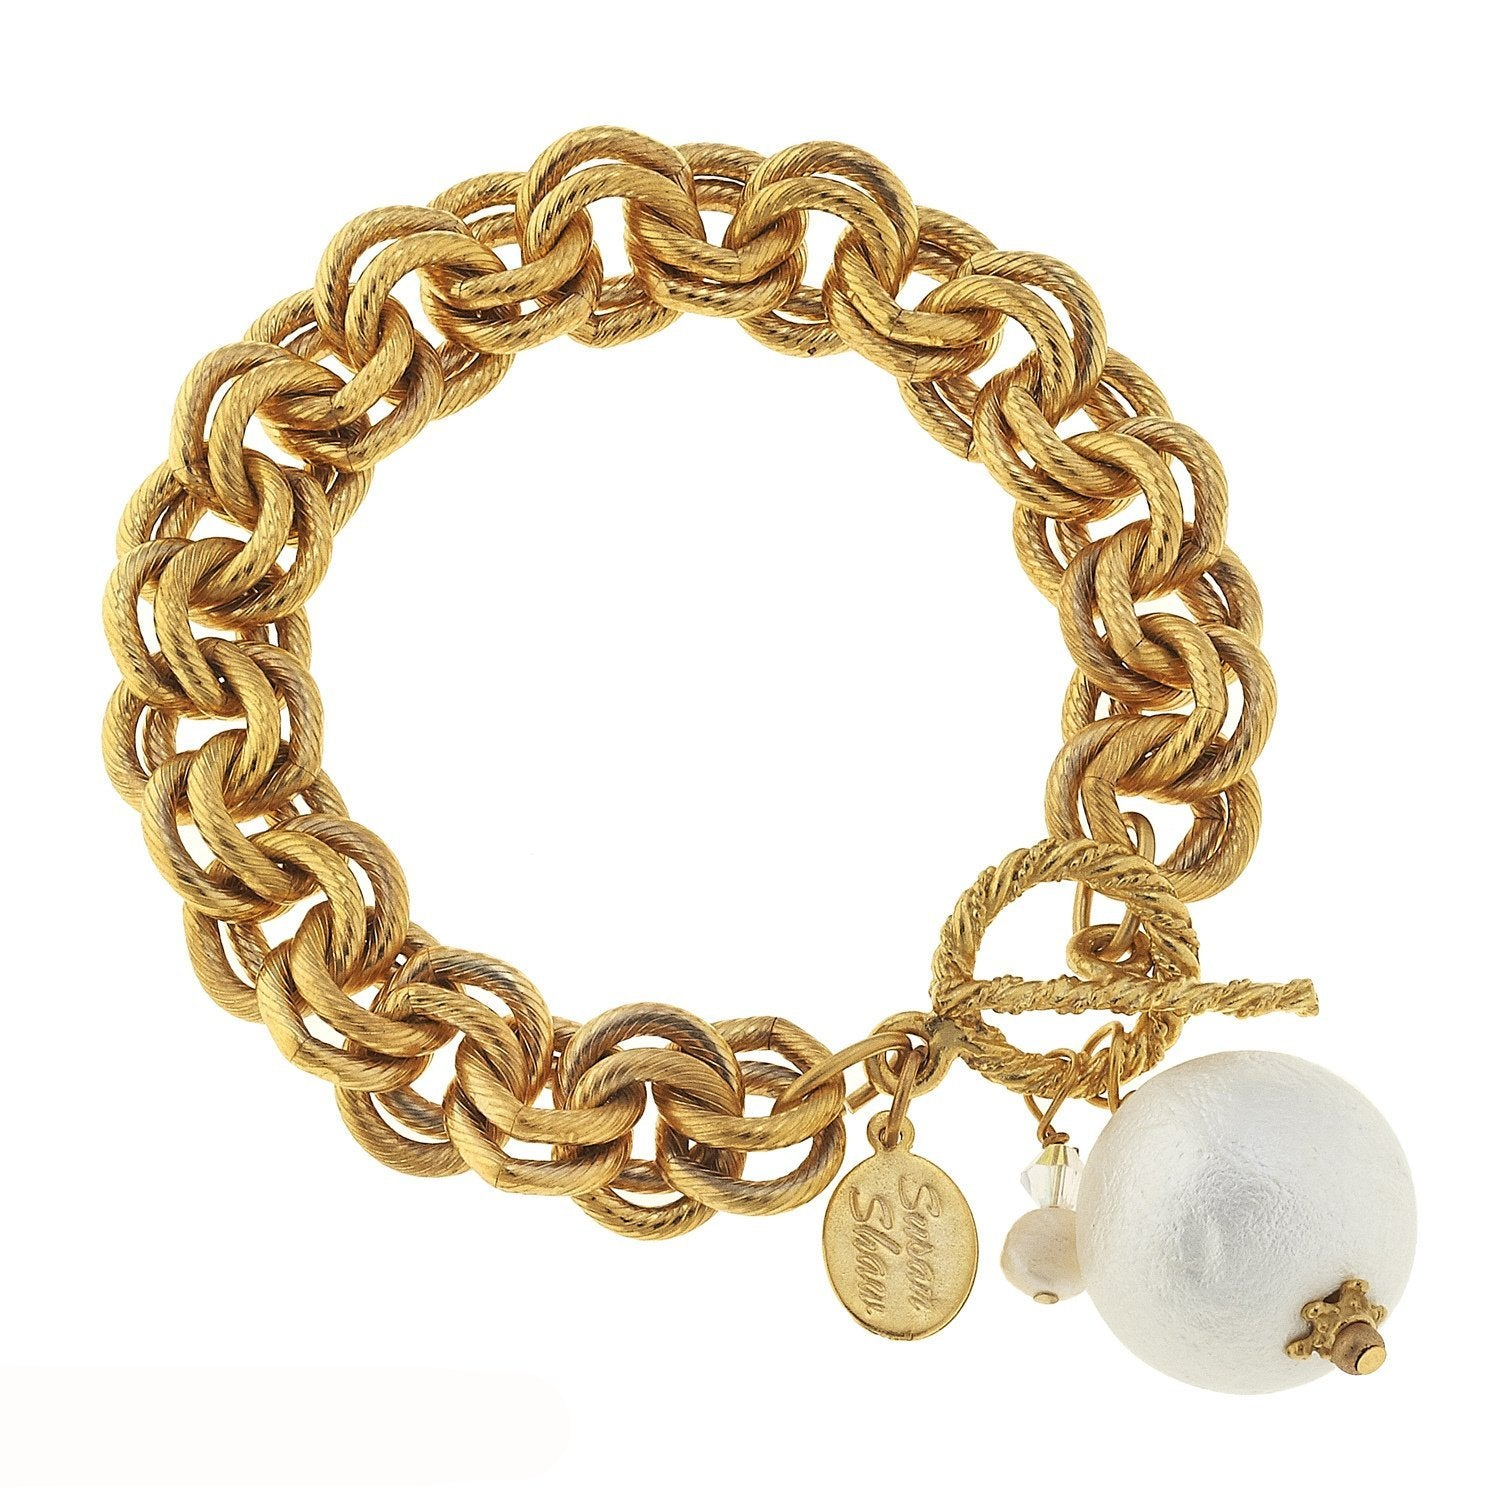 Susan Shaw Handcast Gold with Cotton Pearl Bracelet